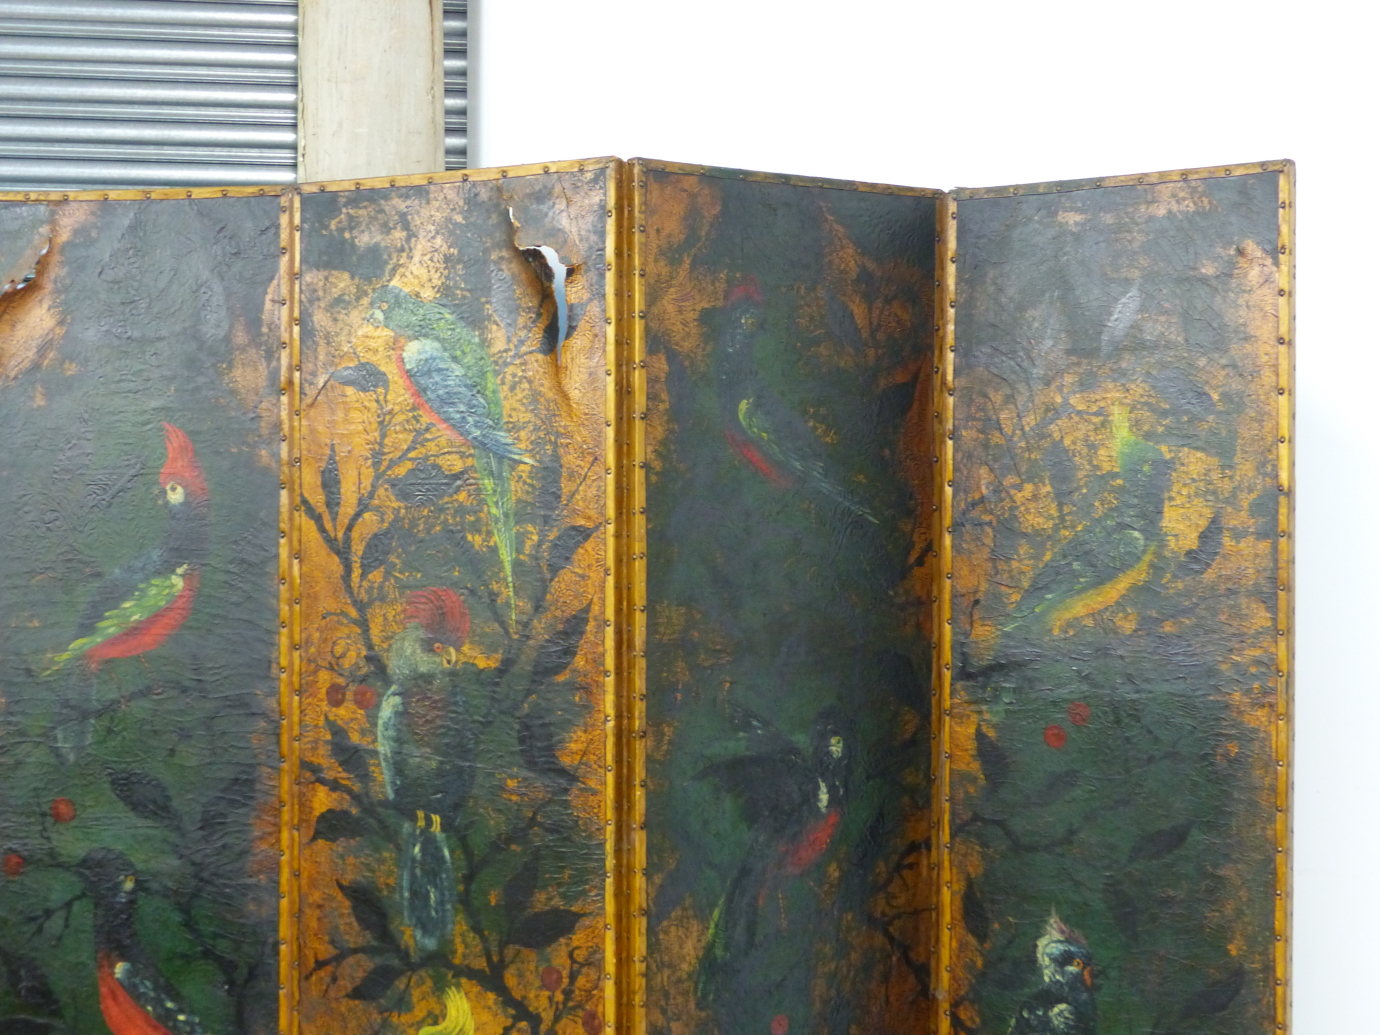 Lot 814A - AN IMPRESSIVE PAIR OF VICTORIAN AESTHETIC FOUR FOLD SCREENS WITH HAND PAINTED LEATHER PANELS DEPICT